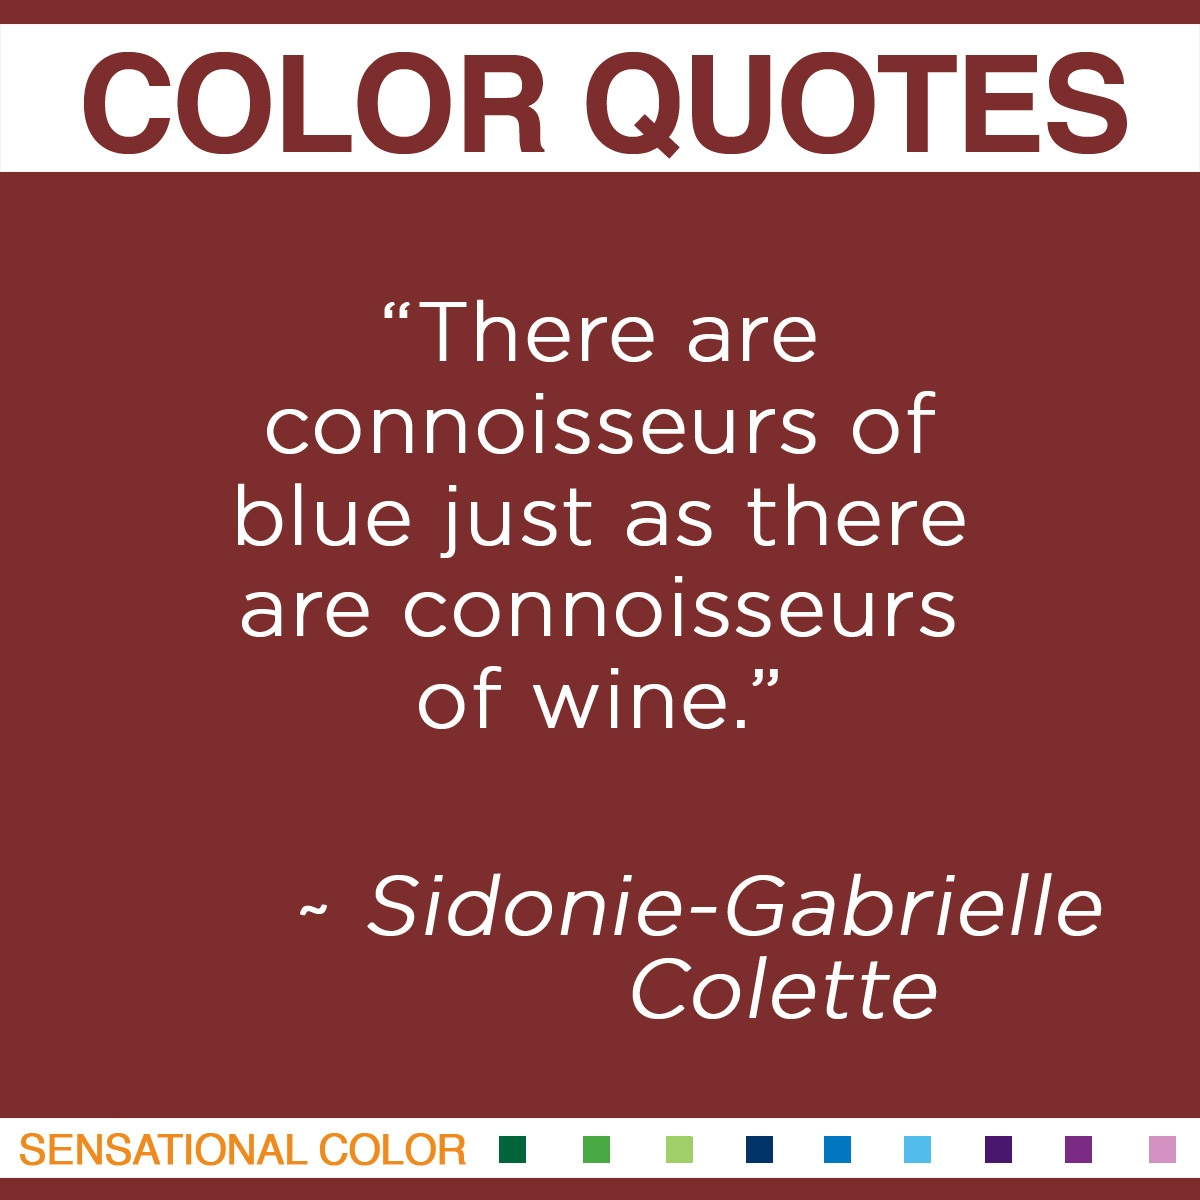 """There are connoisseurs of blue just as there are connoisseurs of wine."" - Sidonie-Gabrielle Colette"